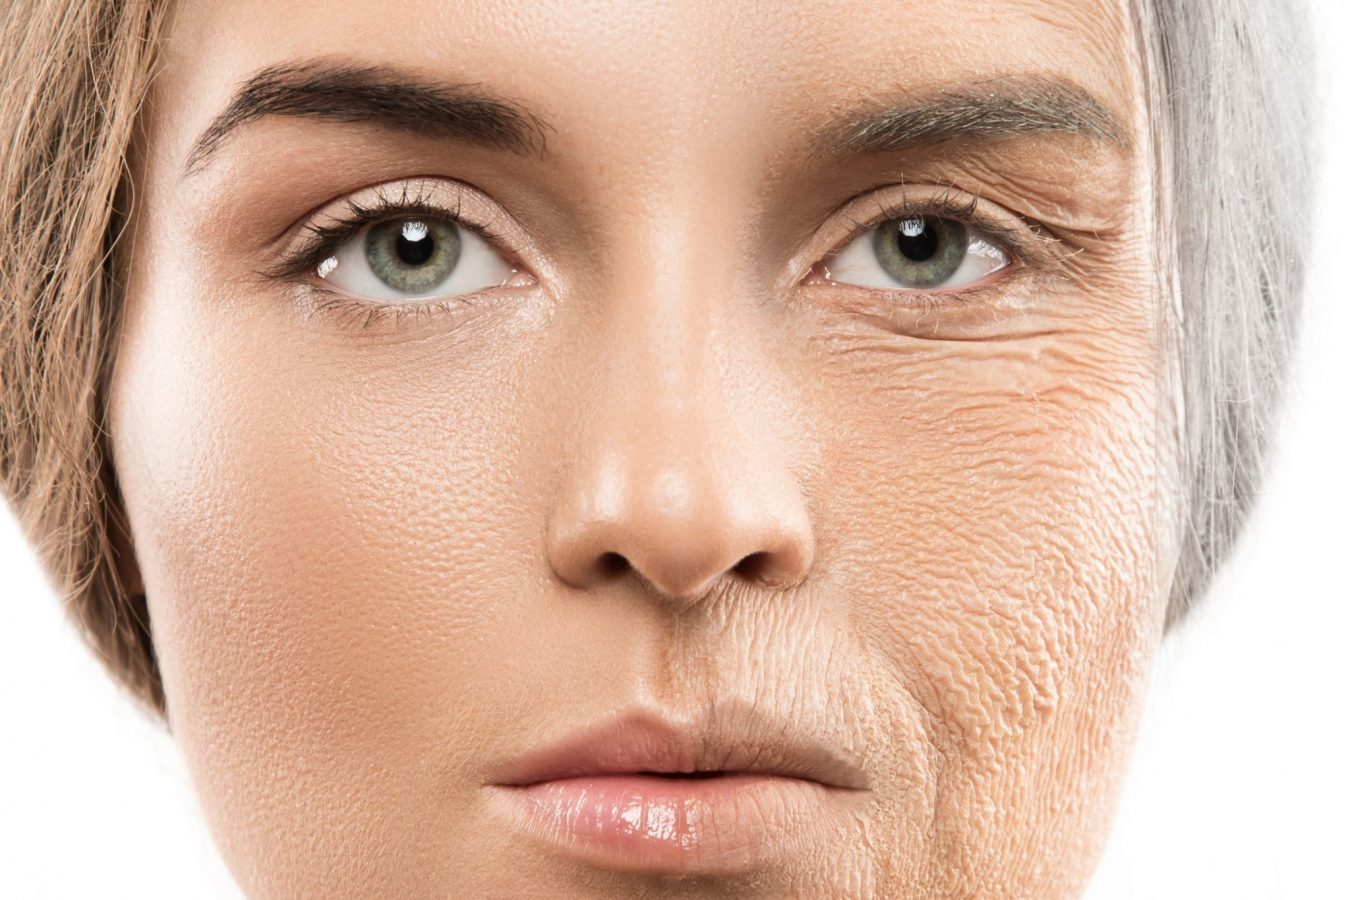 ANTI-AGING PROGRAM - AnewSkin Aesthetic Clinic and Medical Spa D.C